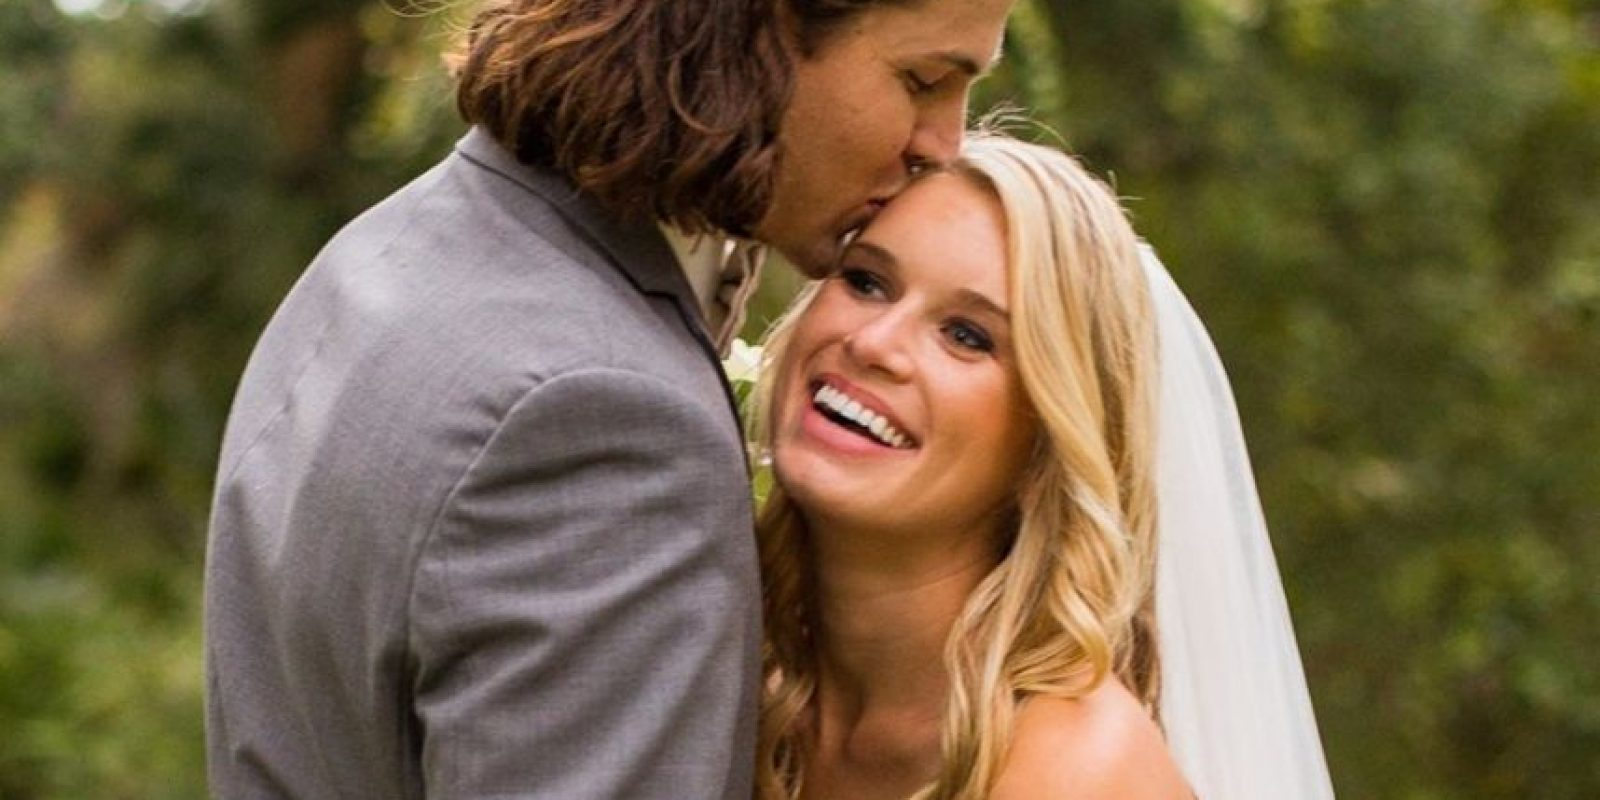 Esposa de Jacob deGrom, pitcher de los Mets. Foto: Vía facebook.com/stacey.harris.984